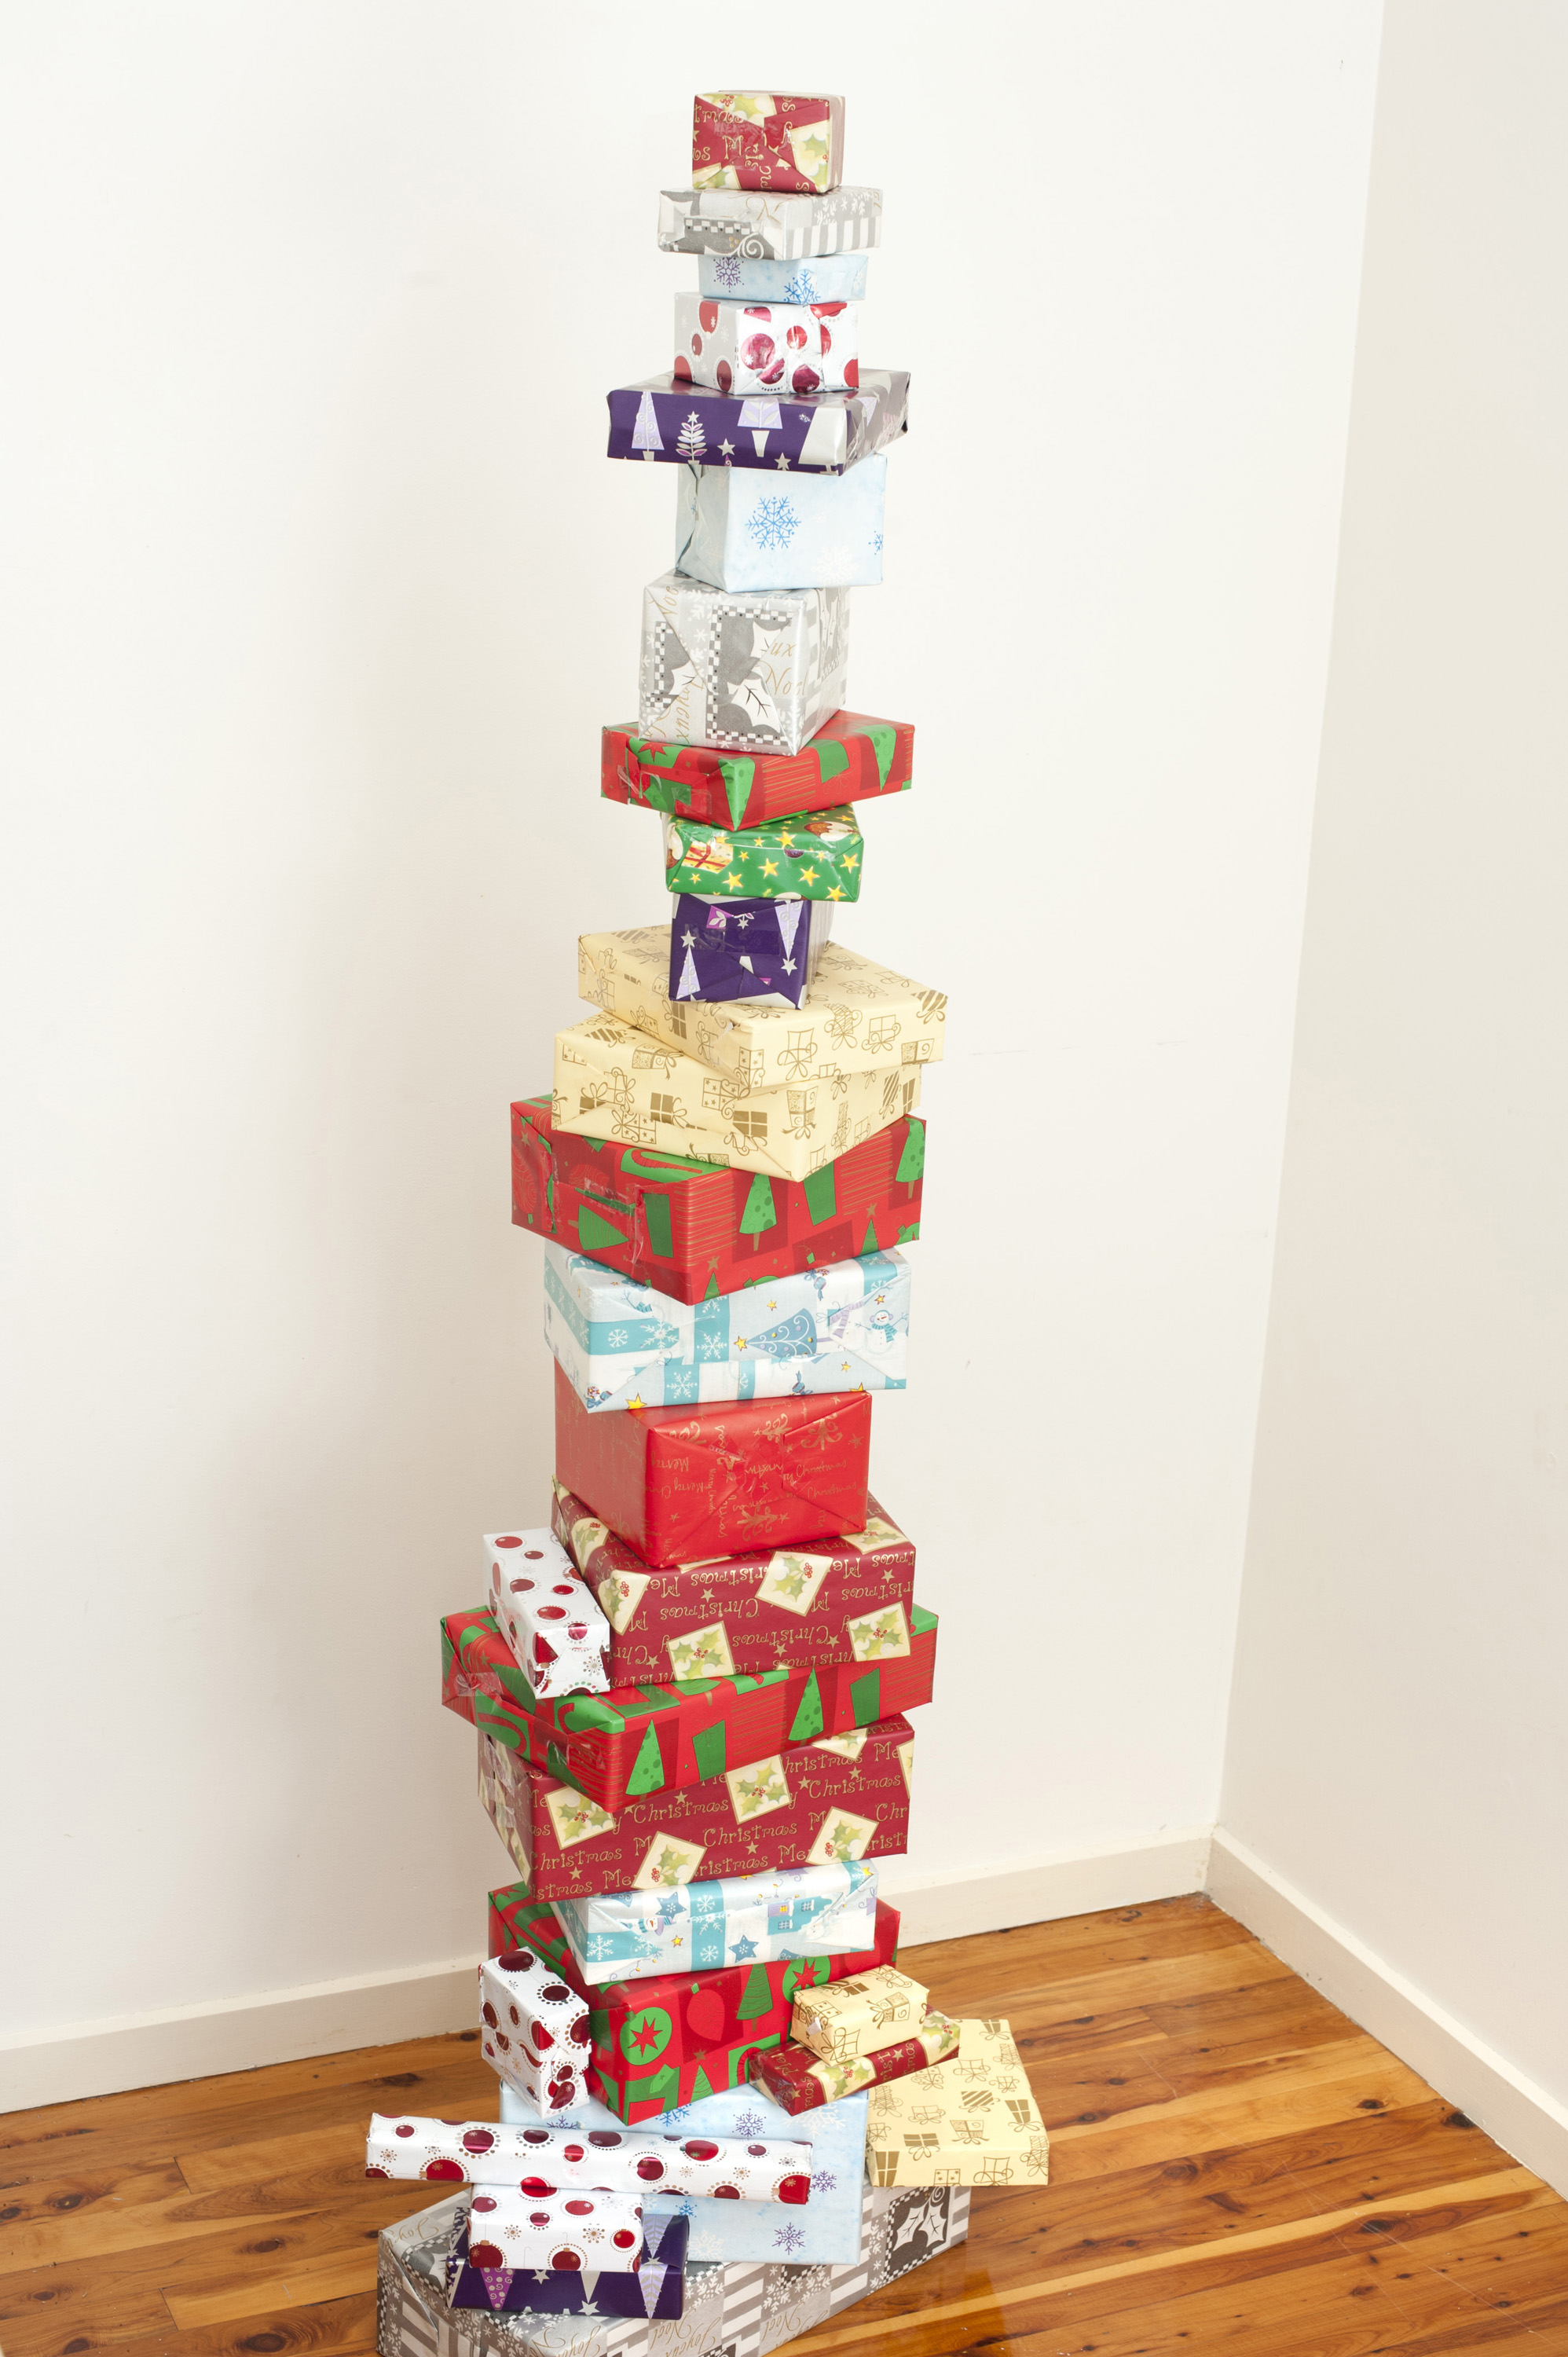 Colourful unique Christmas gift stack with multiple brightly coloured Christmas presents carefully balanced on top of one another in the corner of a room